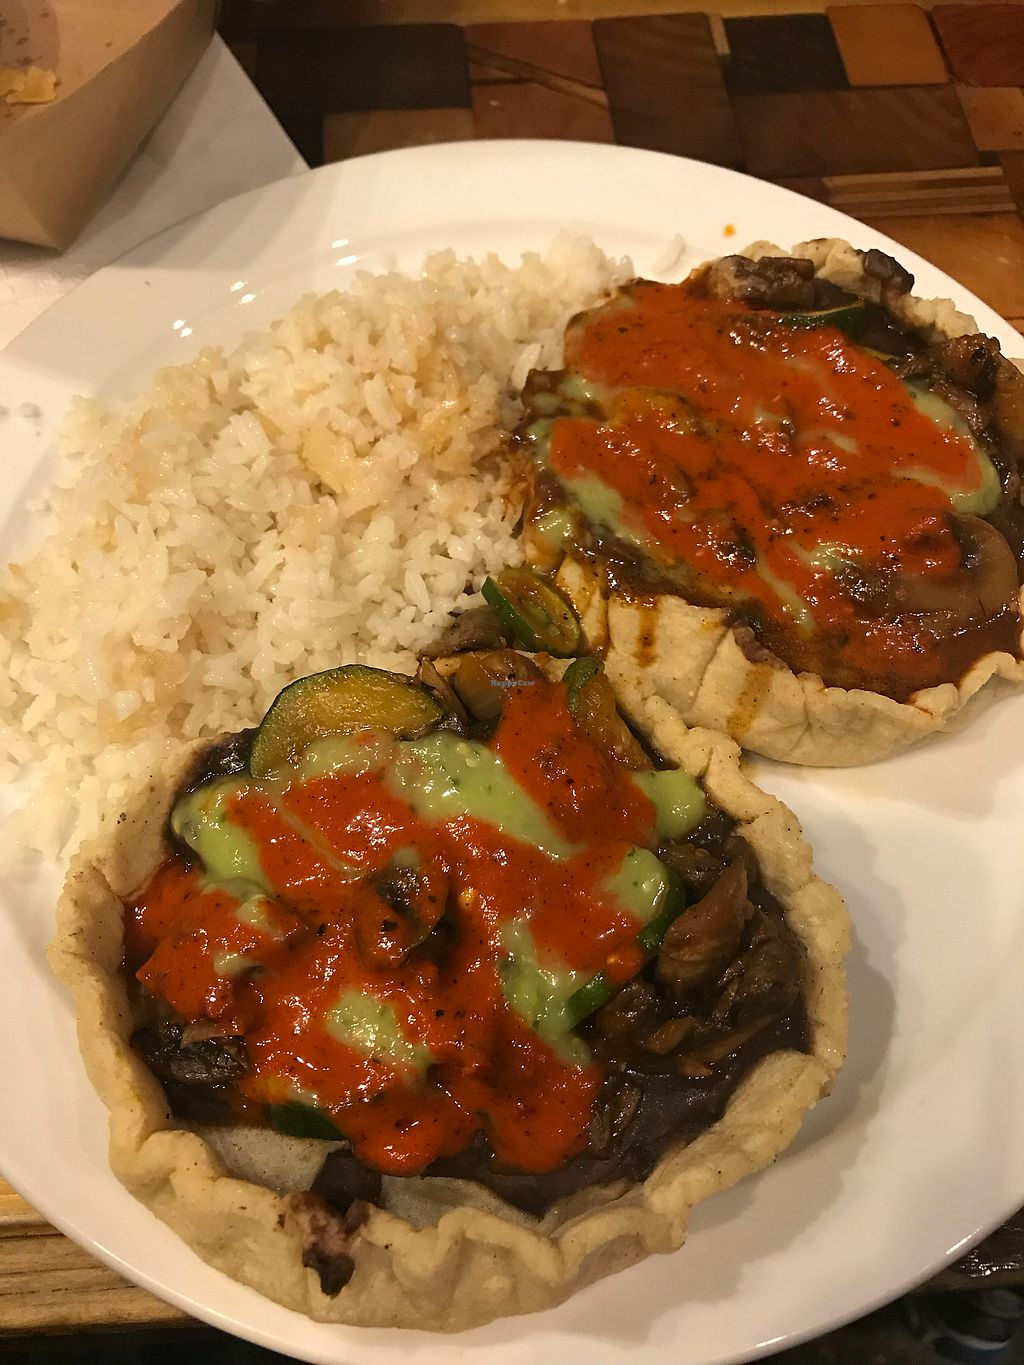 "Photo of Mazunte Taqueria  by <a href=""/members/profile/cspinelli"">cspinelli</a> <br/>Vegan memelitas  <br/> February 26, 2018  - <a href='/contact/abuse/image/96585/364191'>Report</a>"